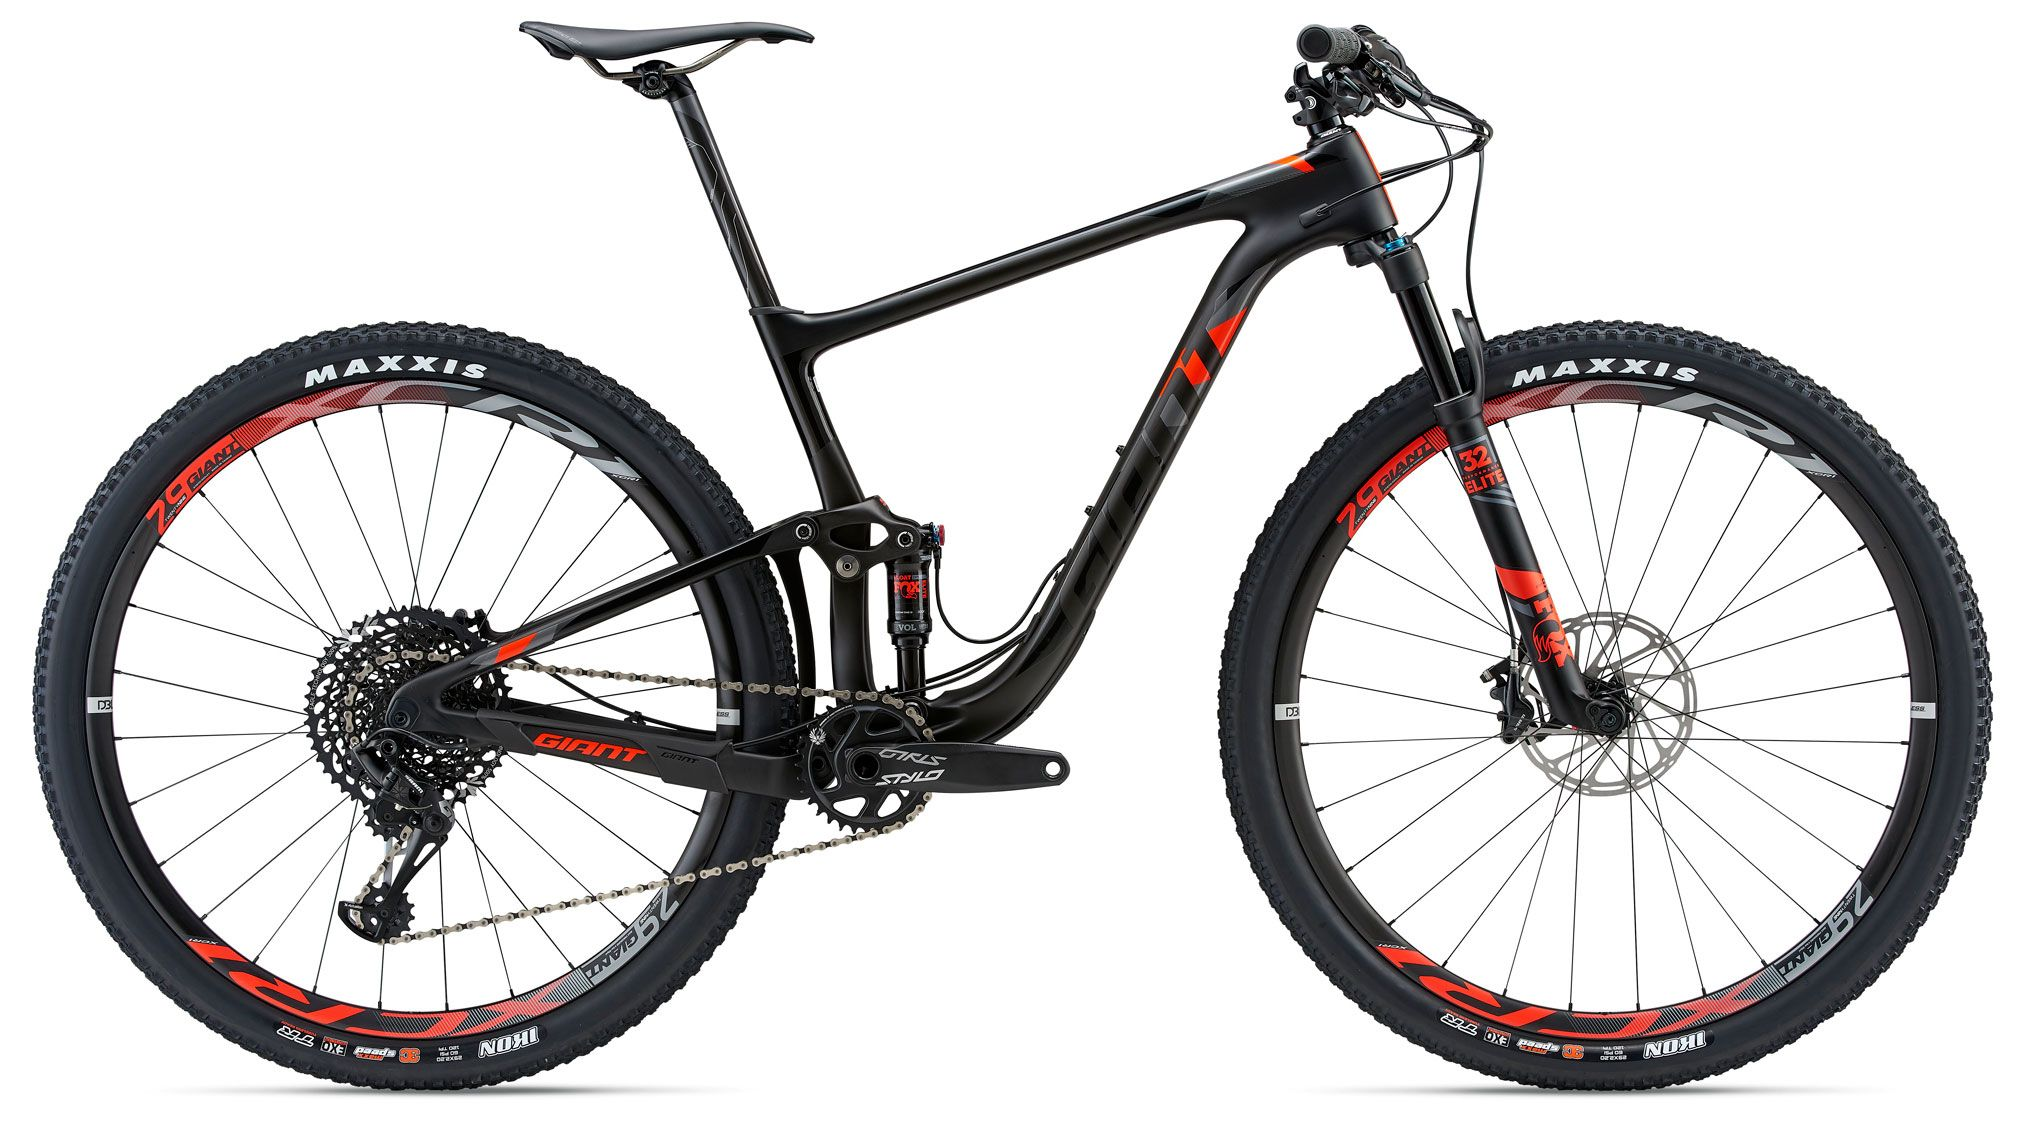 Велосипед Giant Anthem Advanced Pro 29er 1 2018 велосипед giant trinity advanced pro 1 2016 page 8